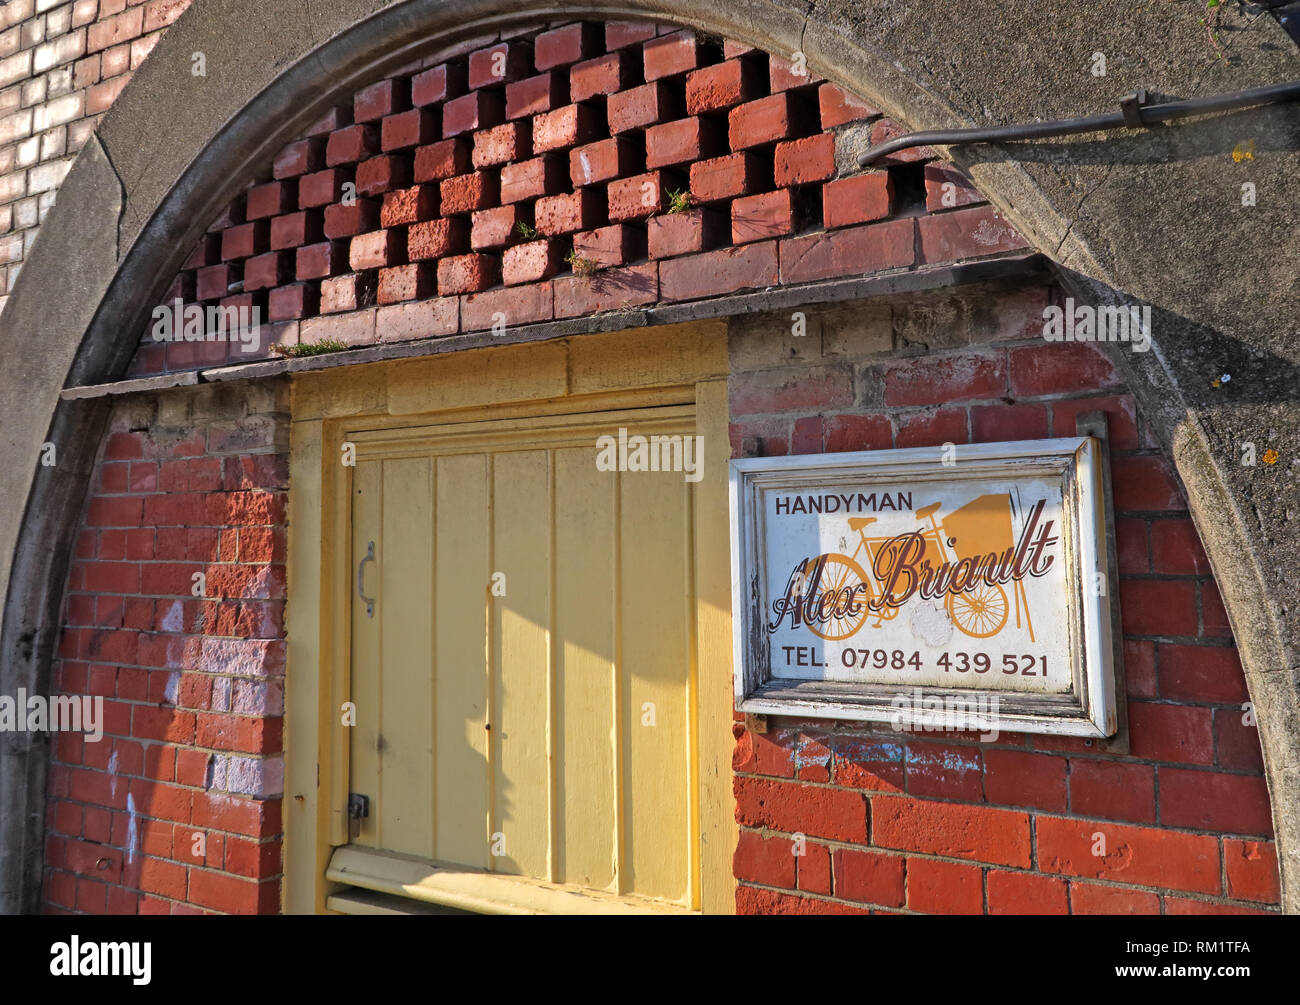 Handyman Alex Briault 07984-4395211, beachfront arches, Brighton, East Sussex, South East England, UK - Stock Image